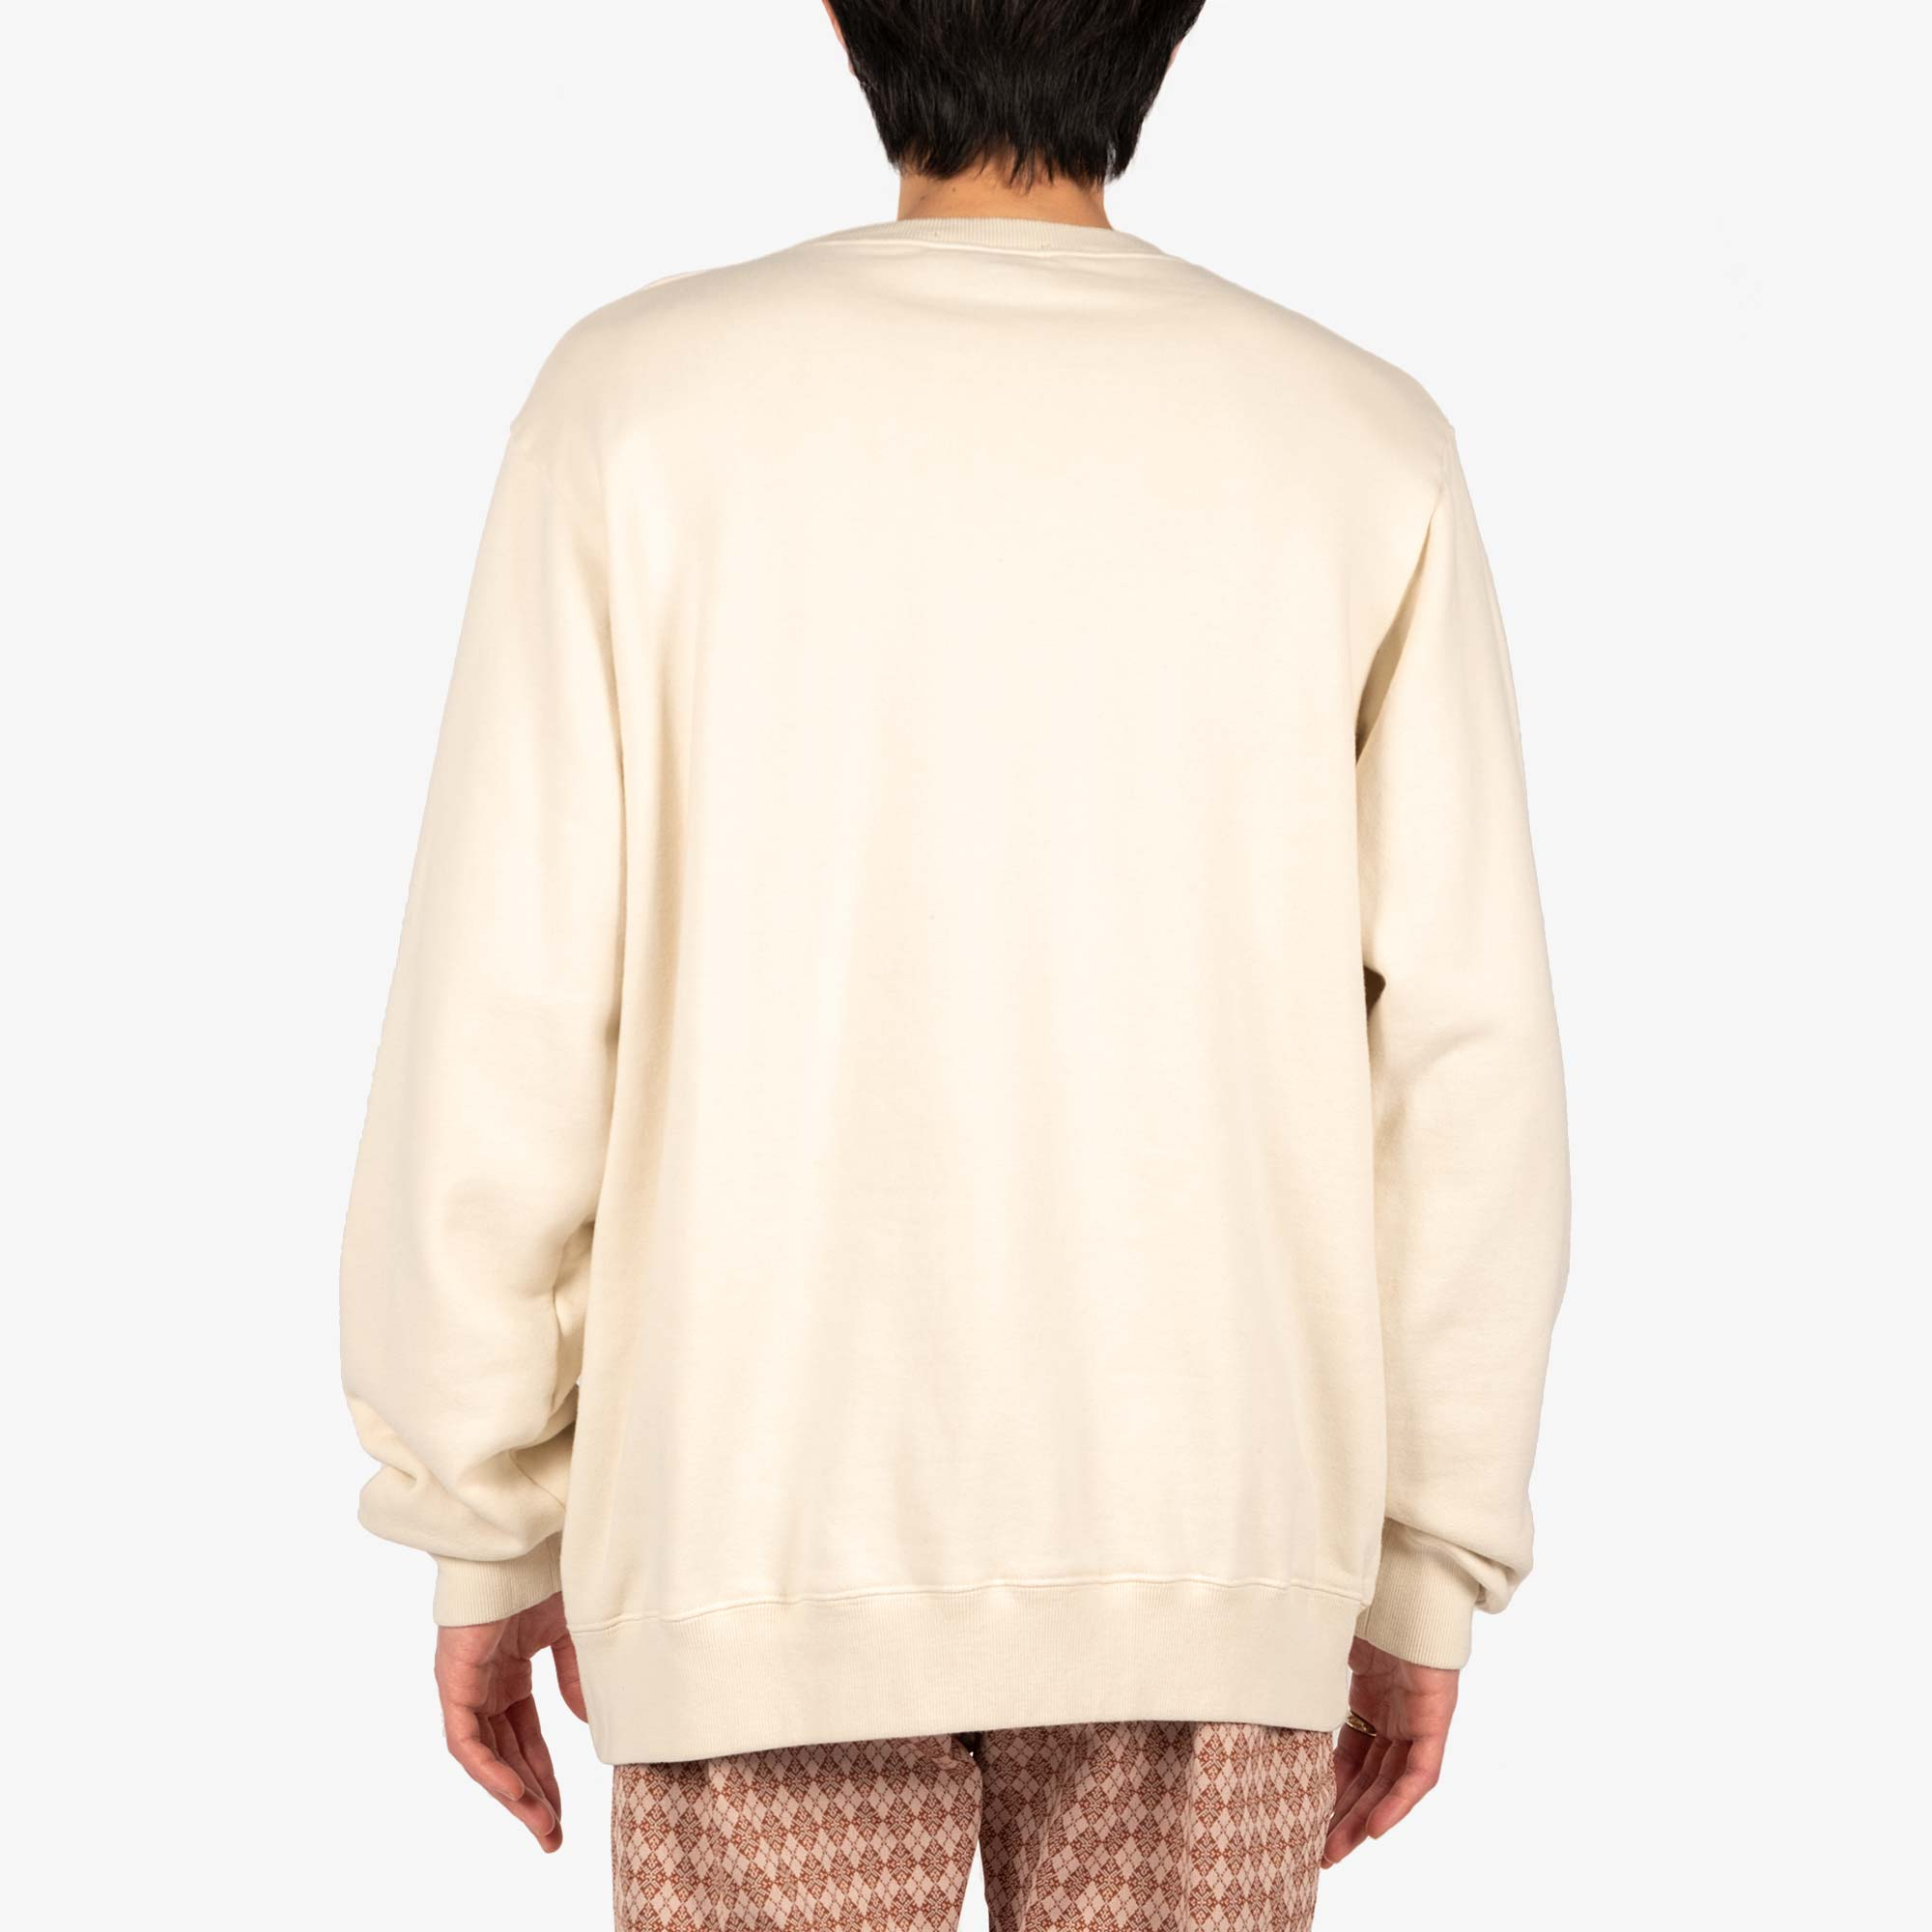 Undercover Teddy Sweat UC2A4893-6 - Ivory 5